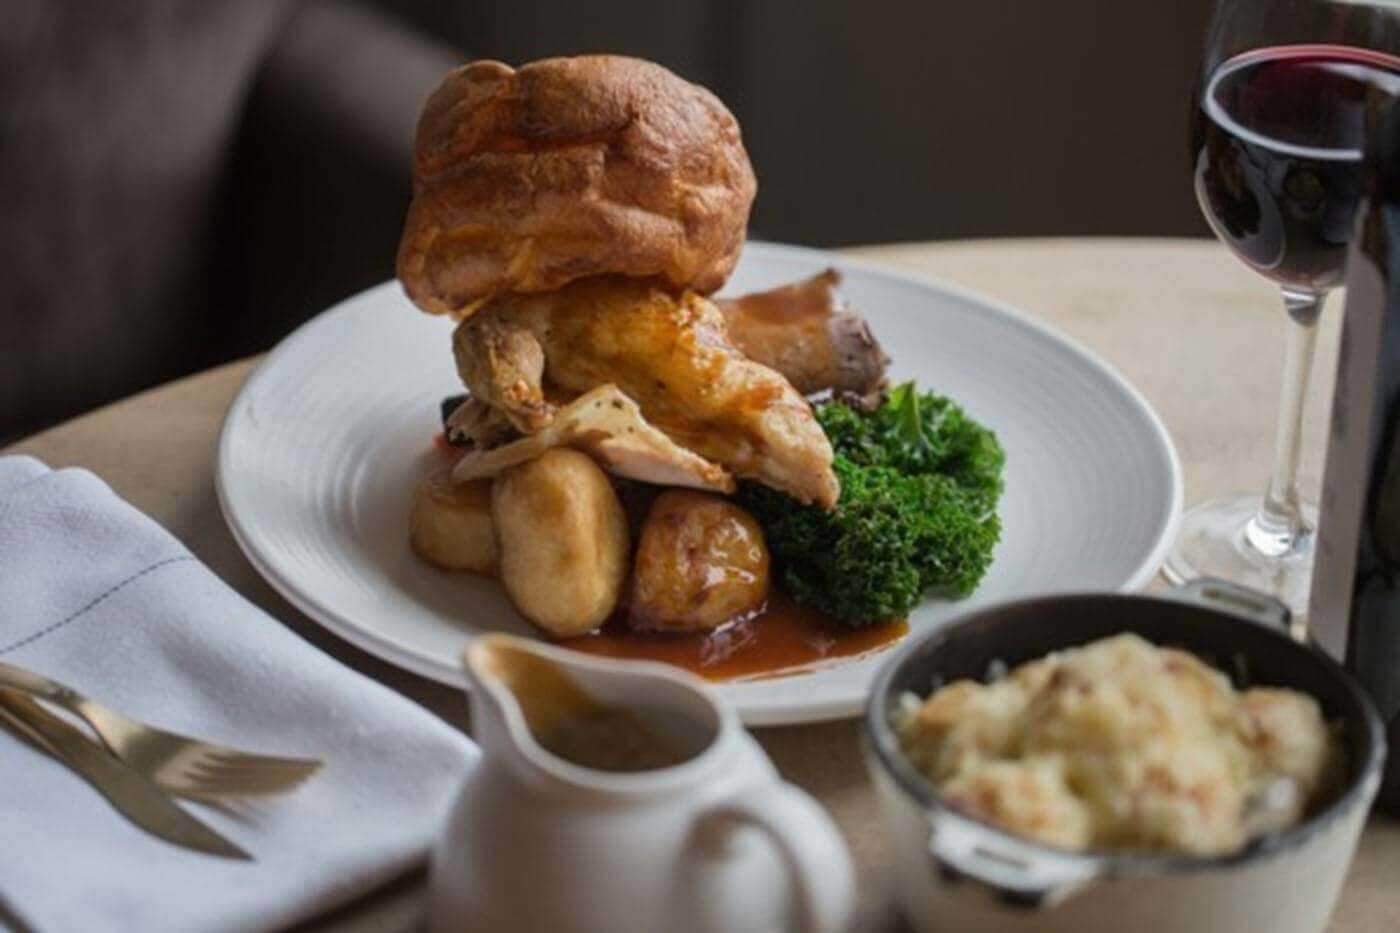 Sunday Lunch at The Morpeth Arms